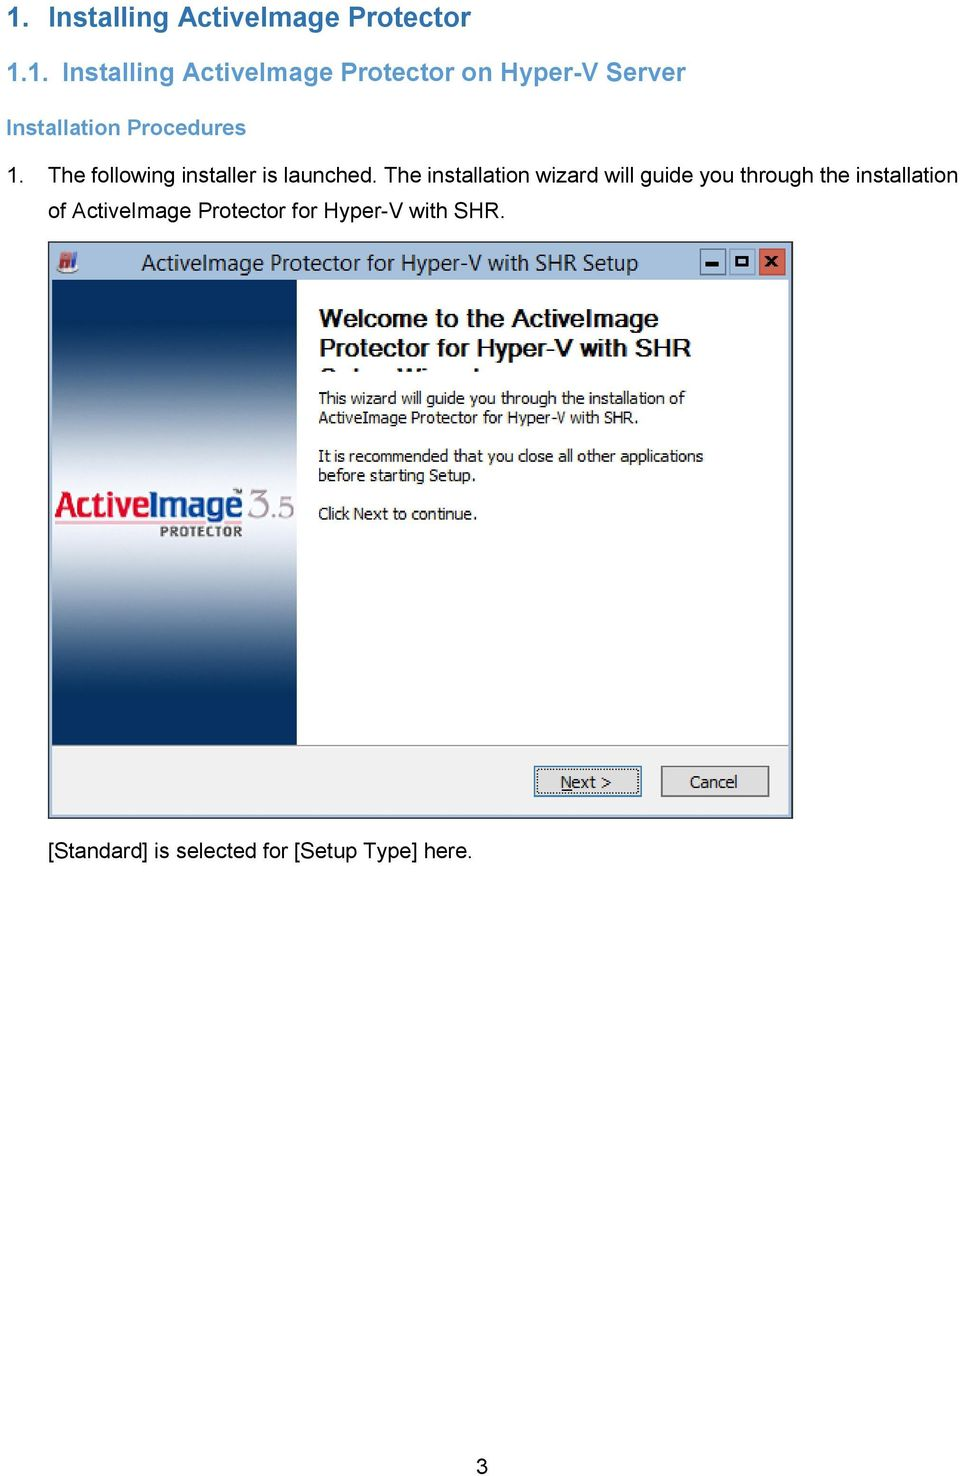 The installation wizard will guide you through the installation of ActiveImage